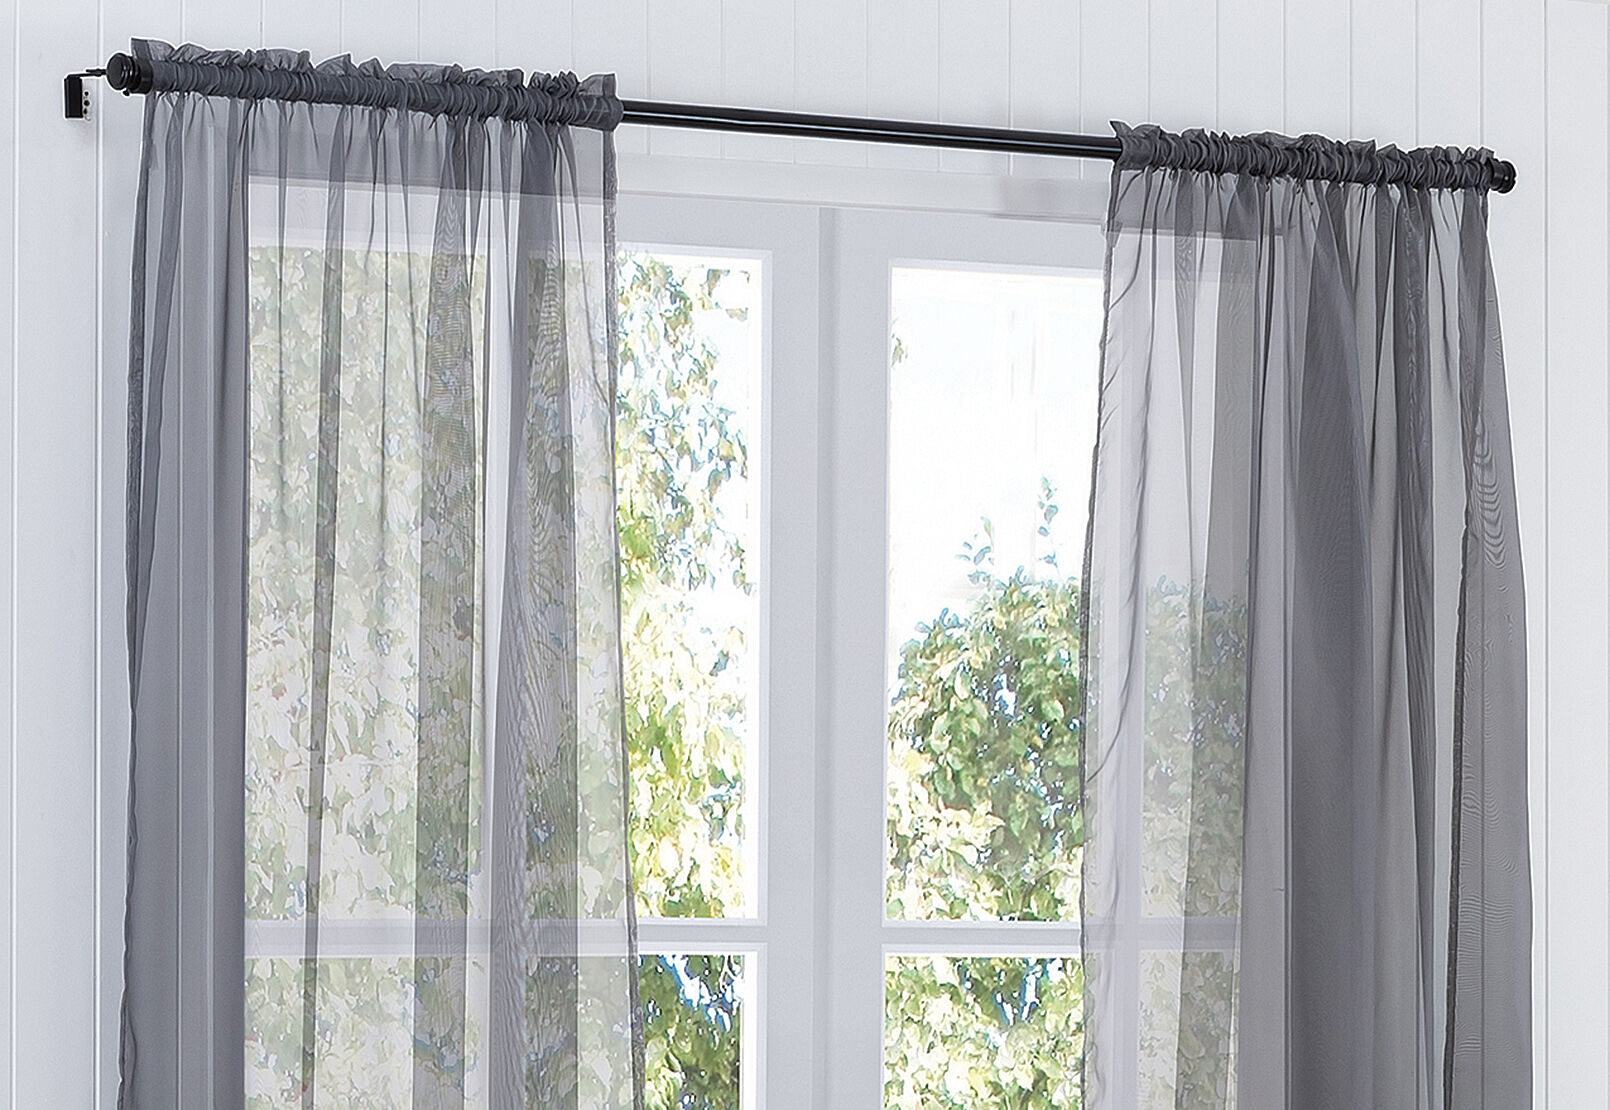 MIST Voile Rod Pocket Curtain with Hemming Tape 135 x 290cm ...